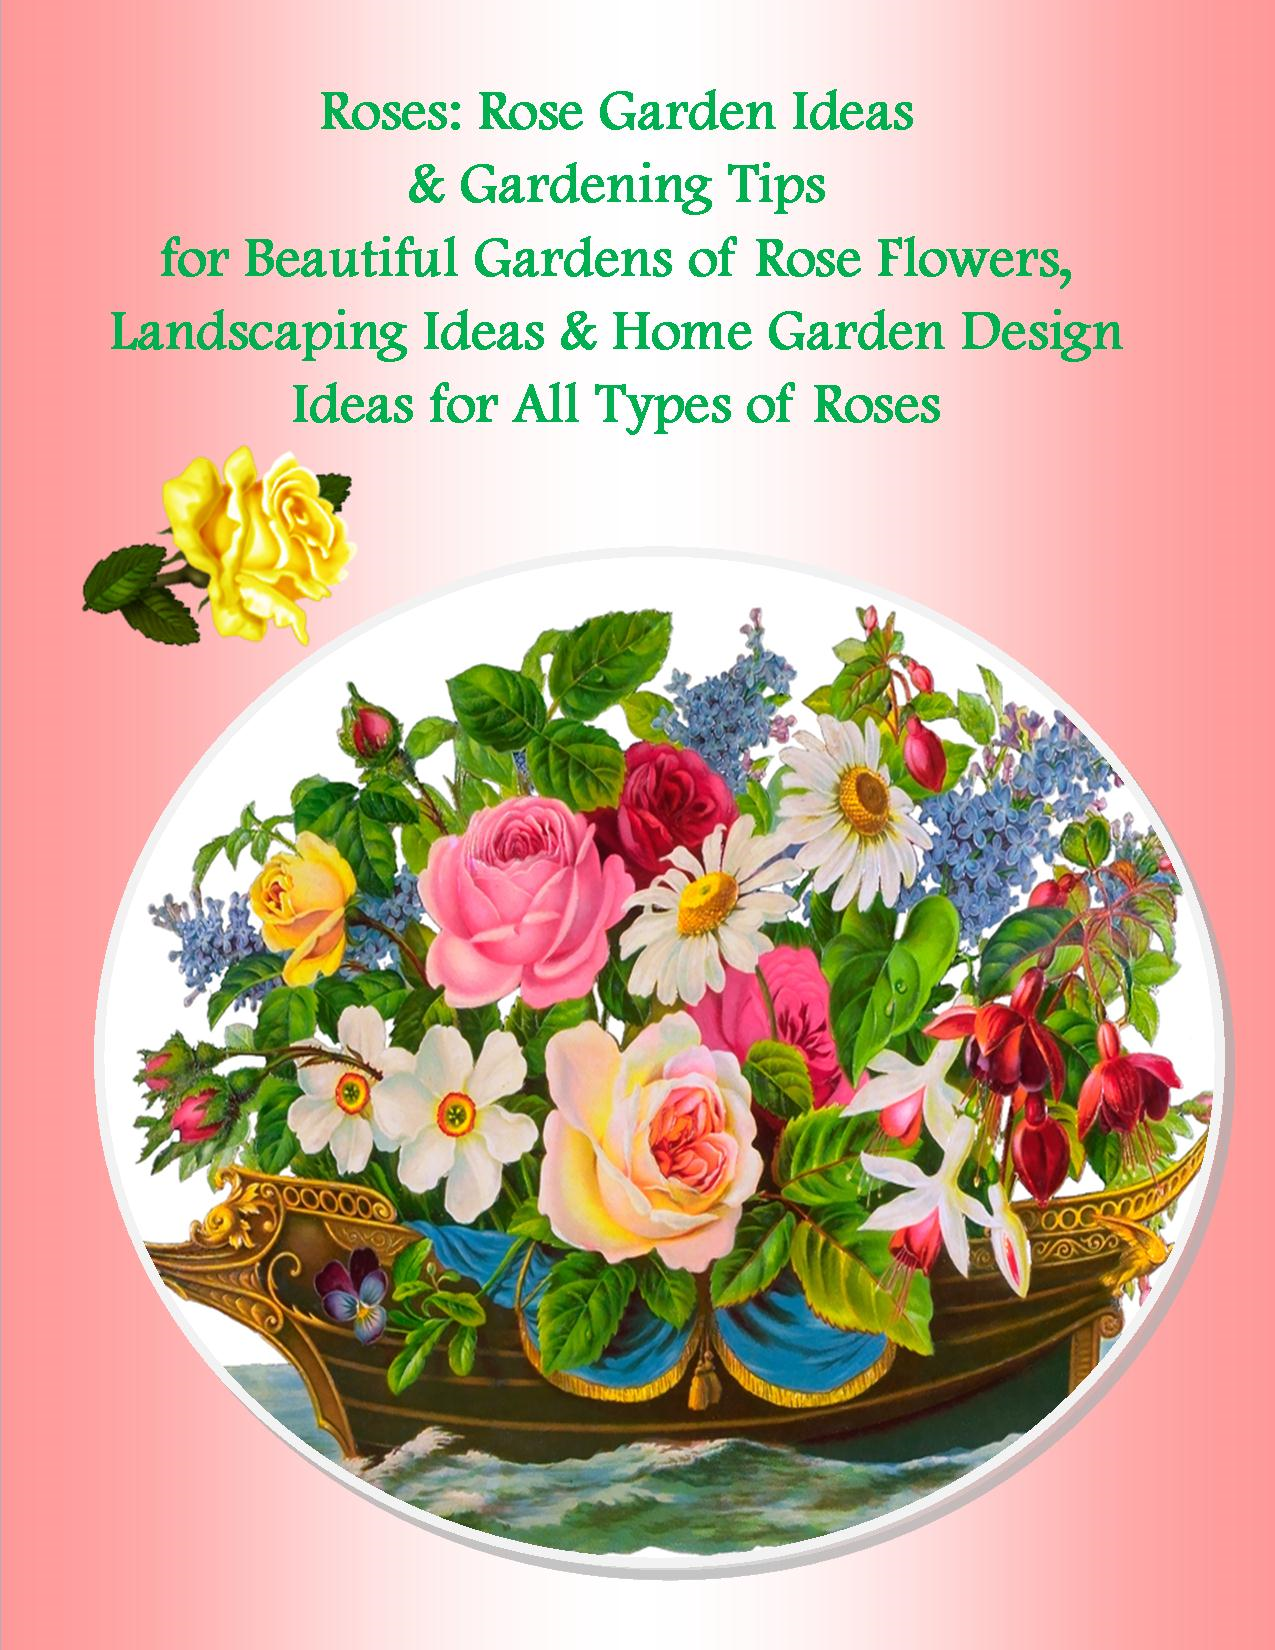 Roses: Rose Garden Ideas & Gardening Tips for Beautiful Gardens of Rose Flowers, Landscaping Ideas & Home Garden Design Ideas for All Types of Roses